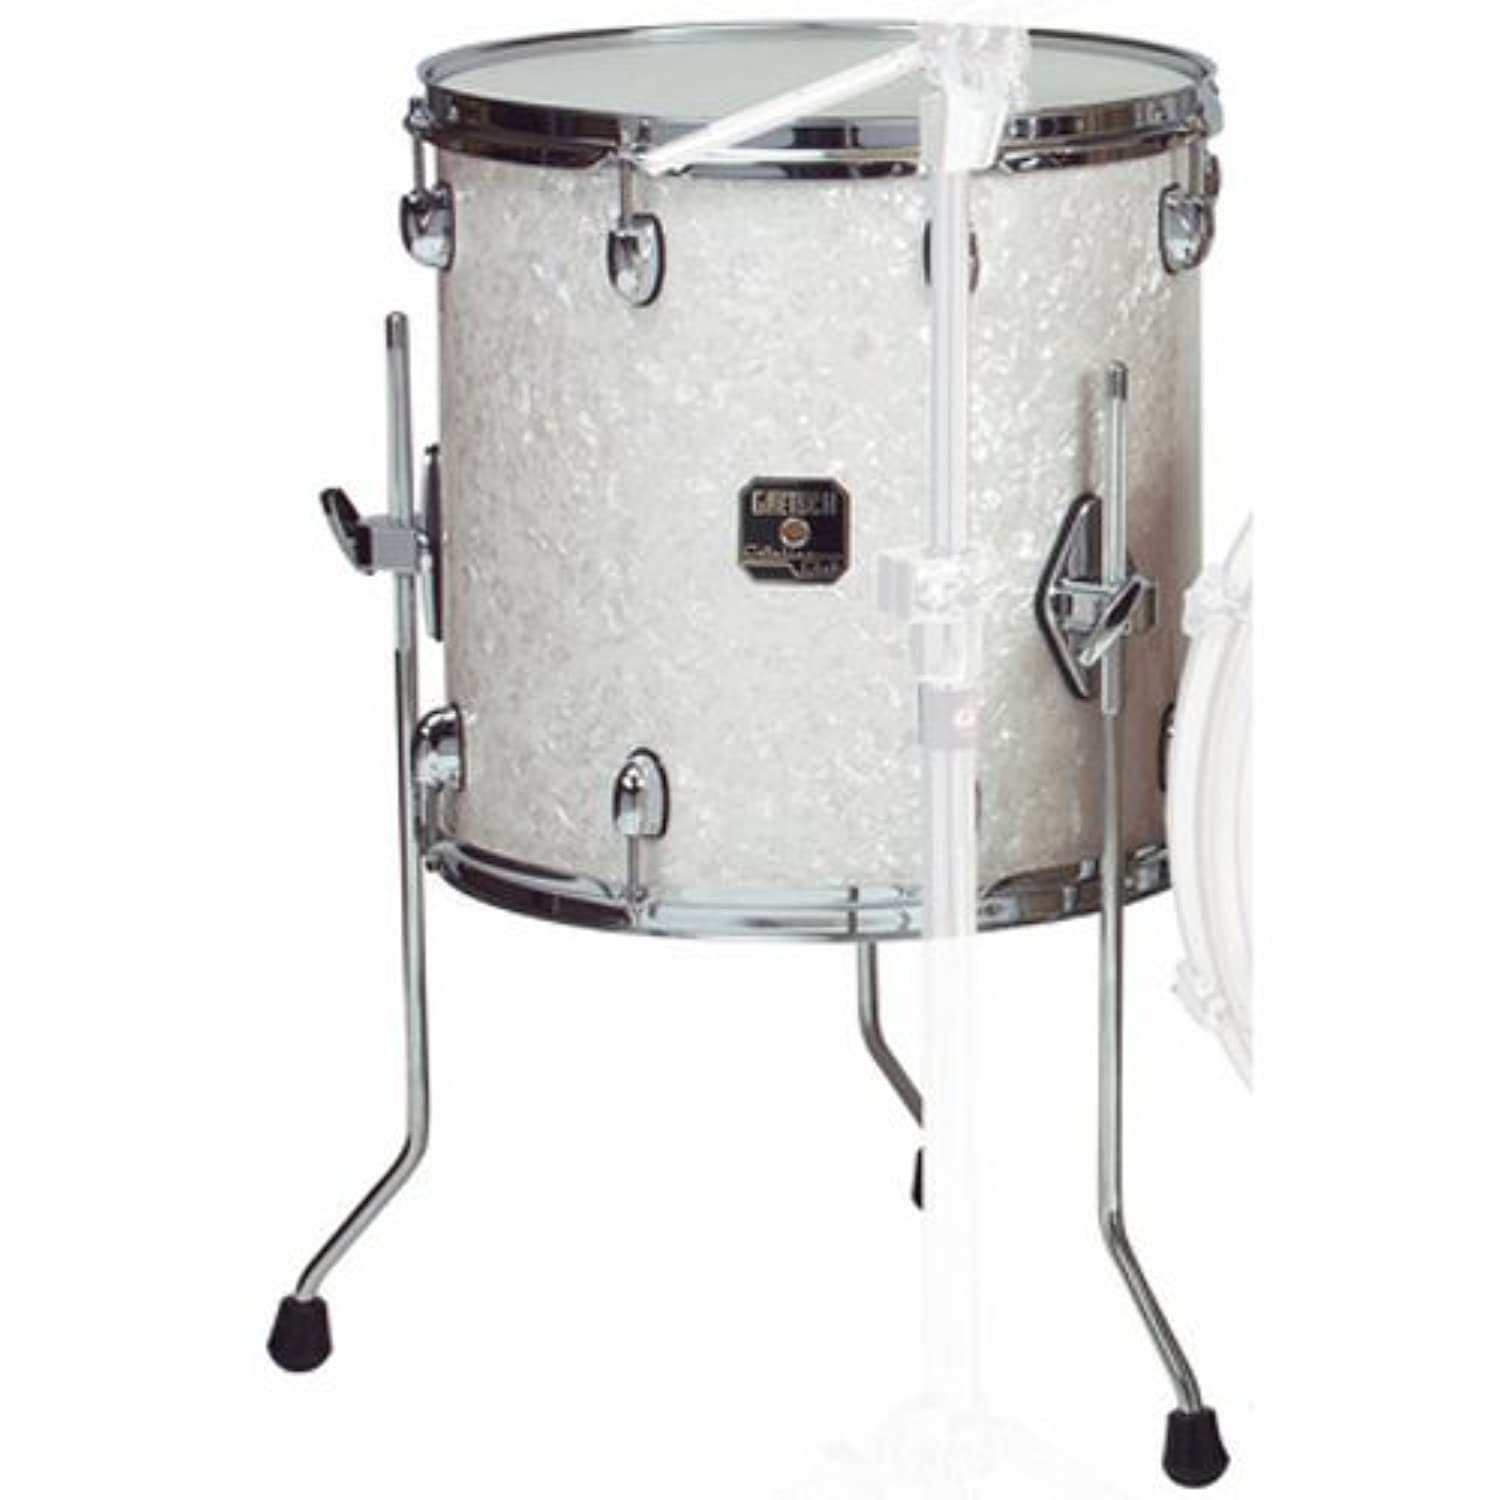 Gretsch Drums RN1-1414F-SW 14-Inch Drum Set Floor Tom Tom - Satin White [並行輸入品]